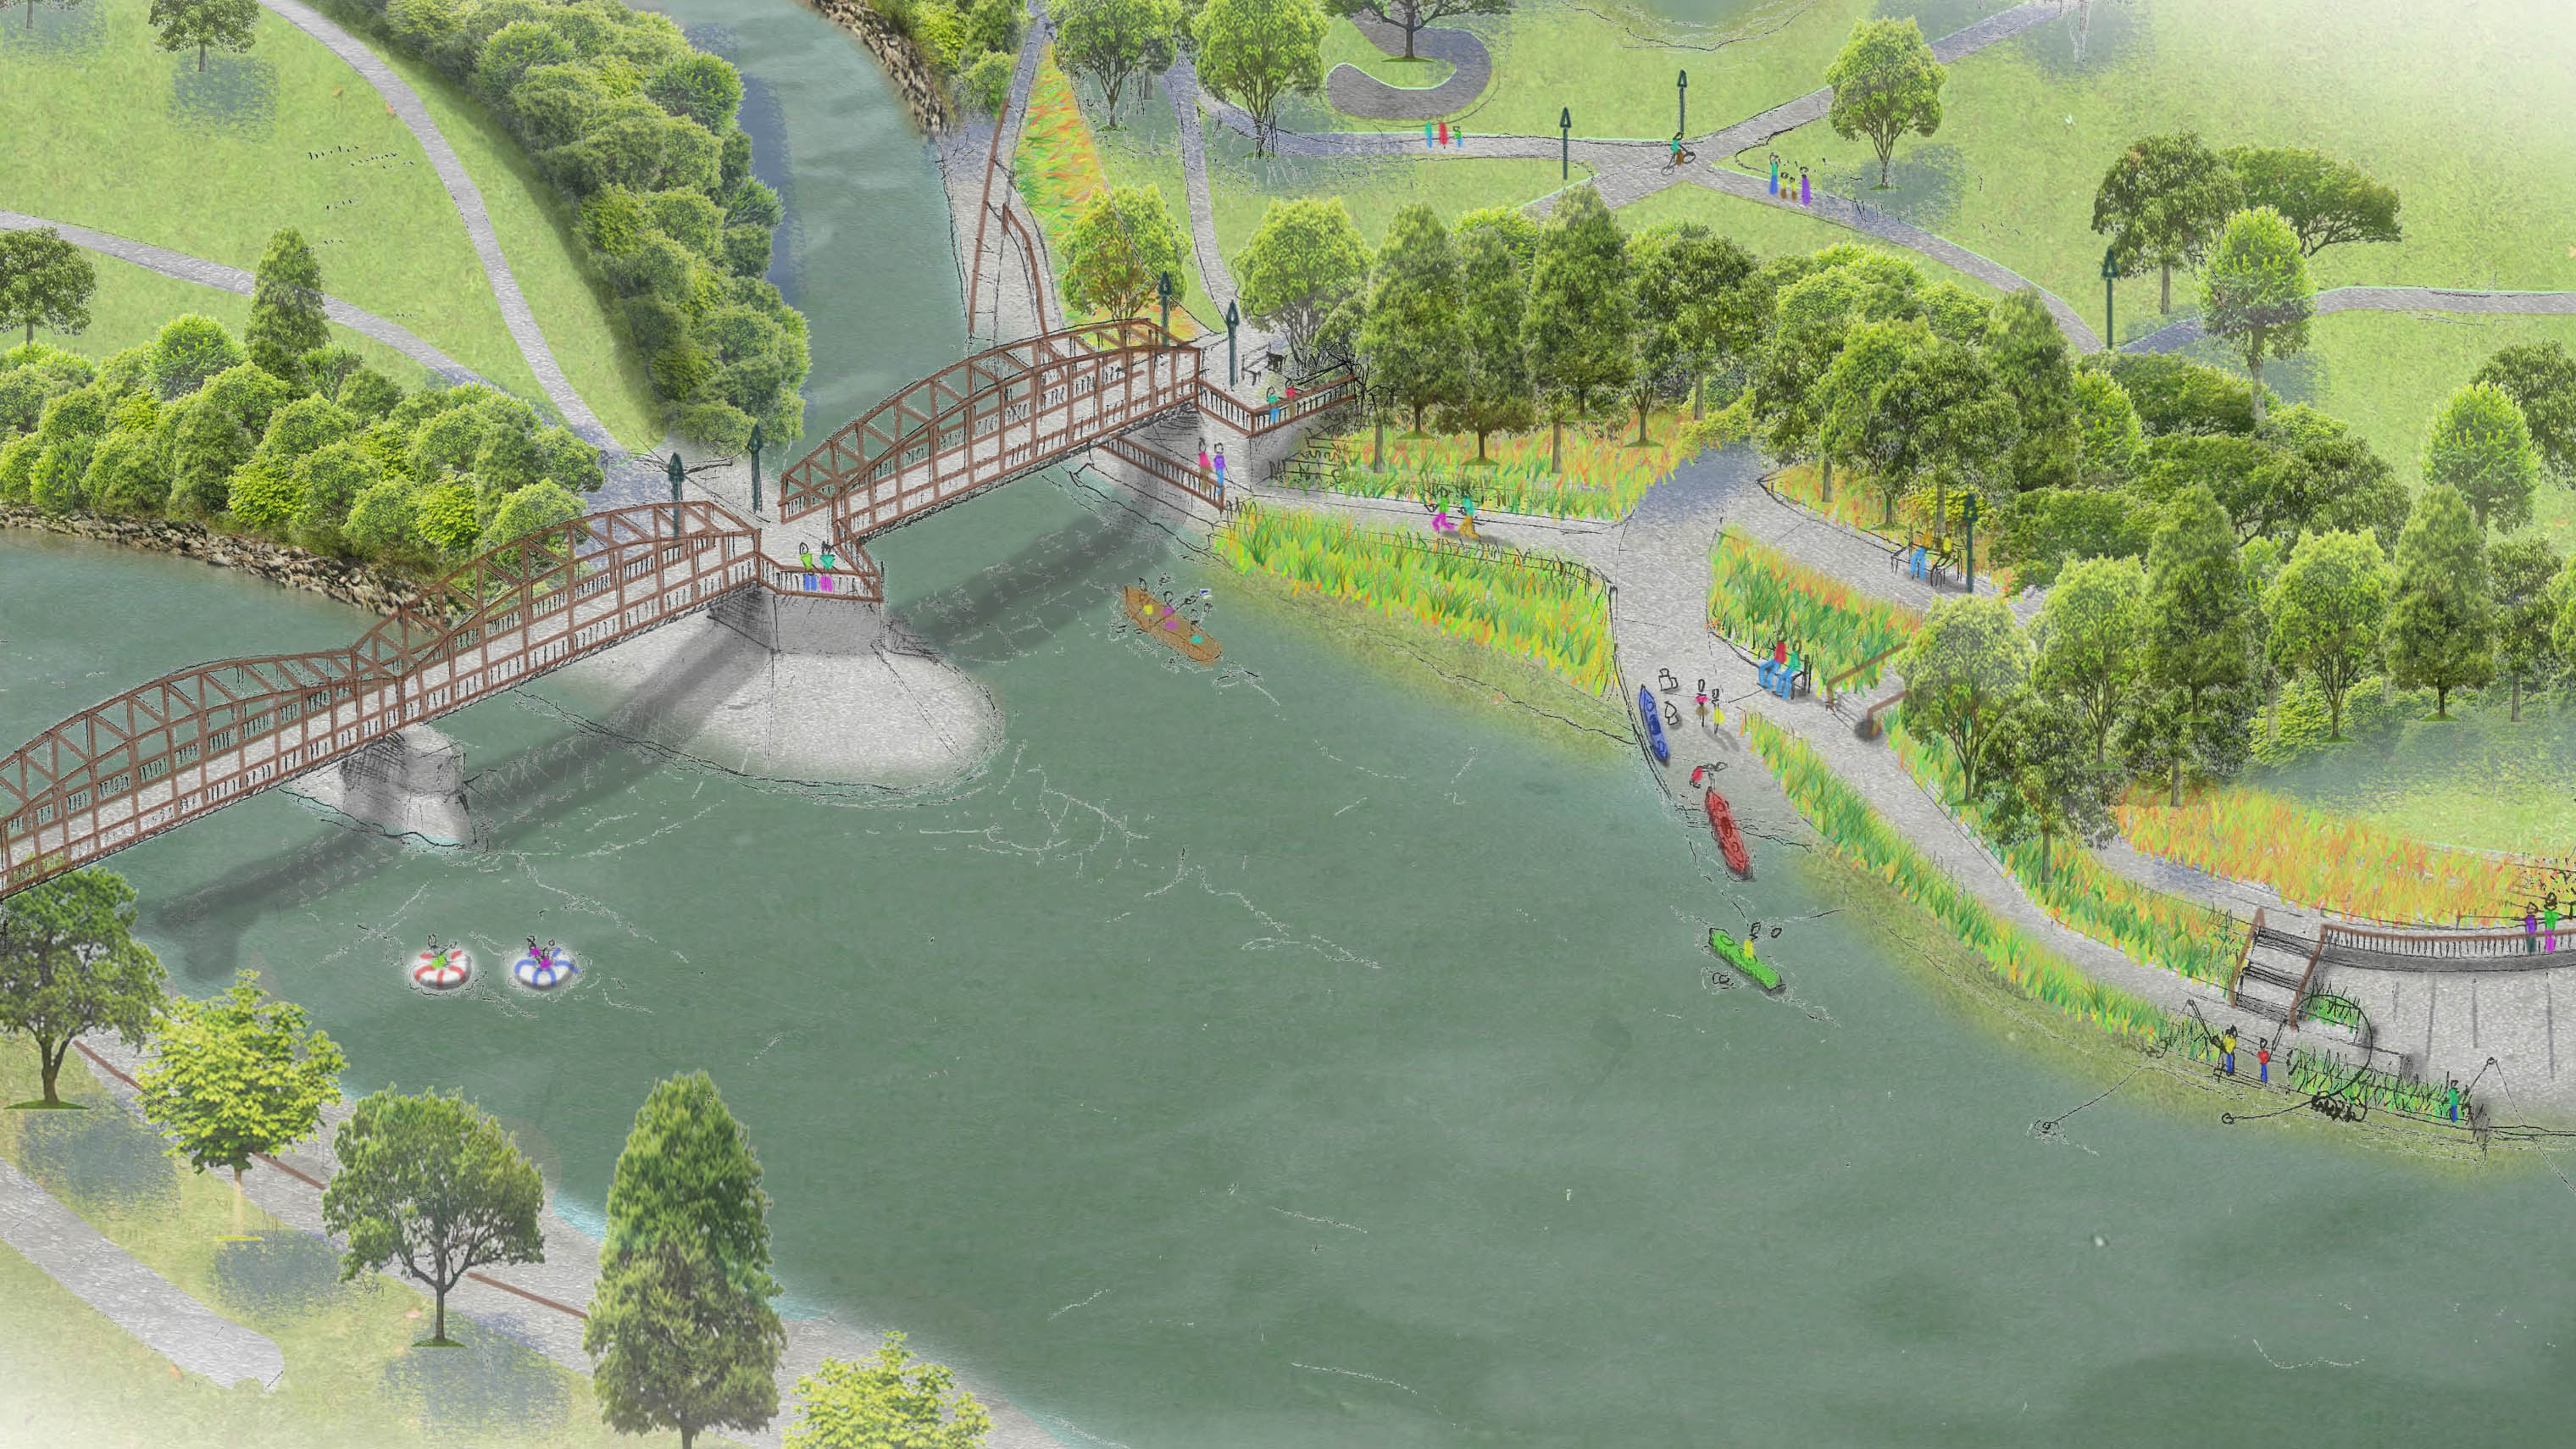 Rendering of confluence of the Flint River and Swartz Creek